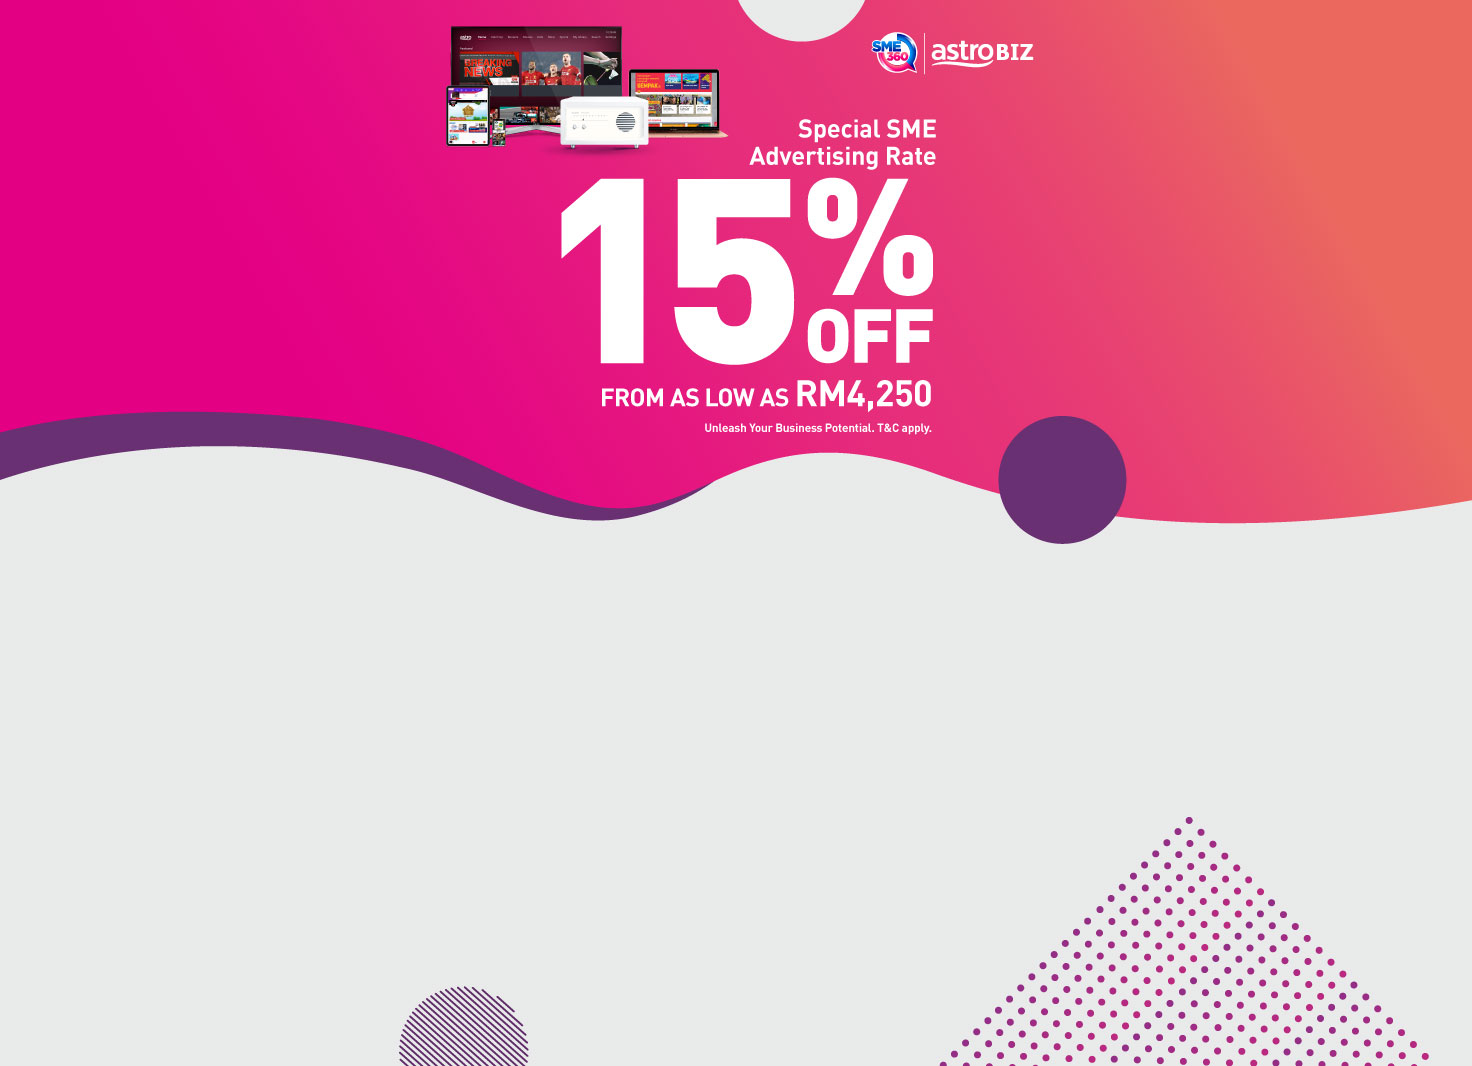 Get up to 15% off when you advertise with Astro BUSINESS from a very attractive price